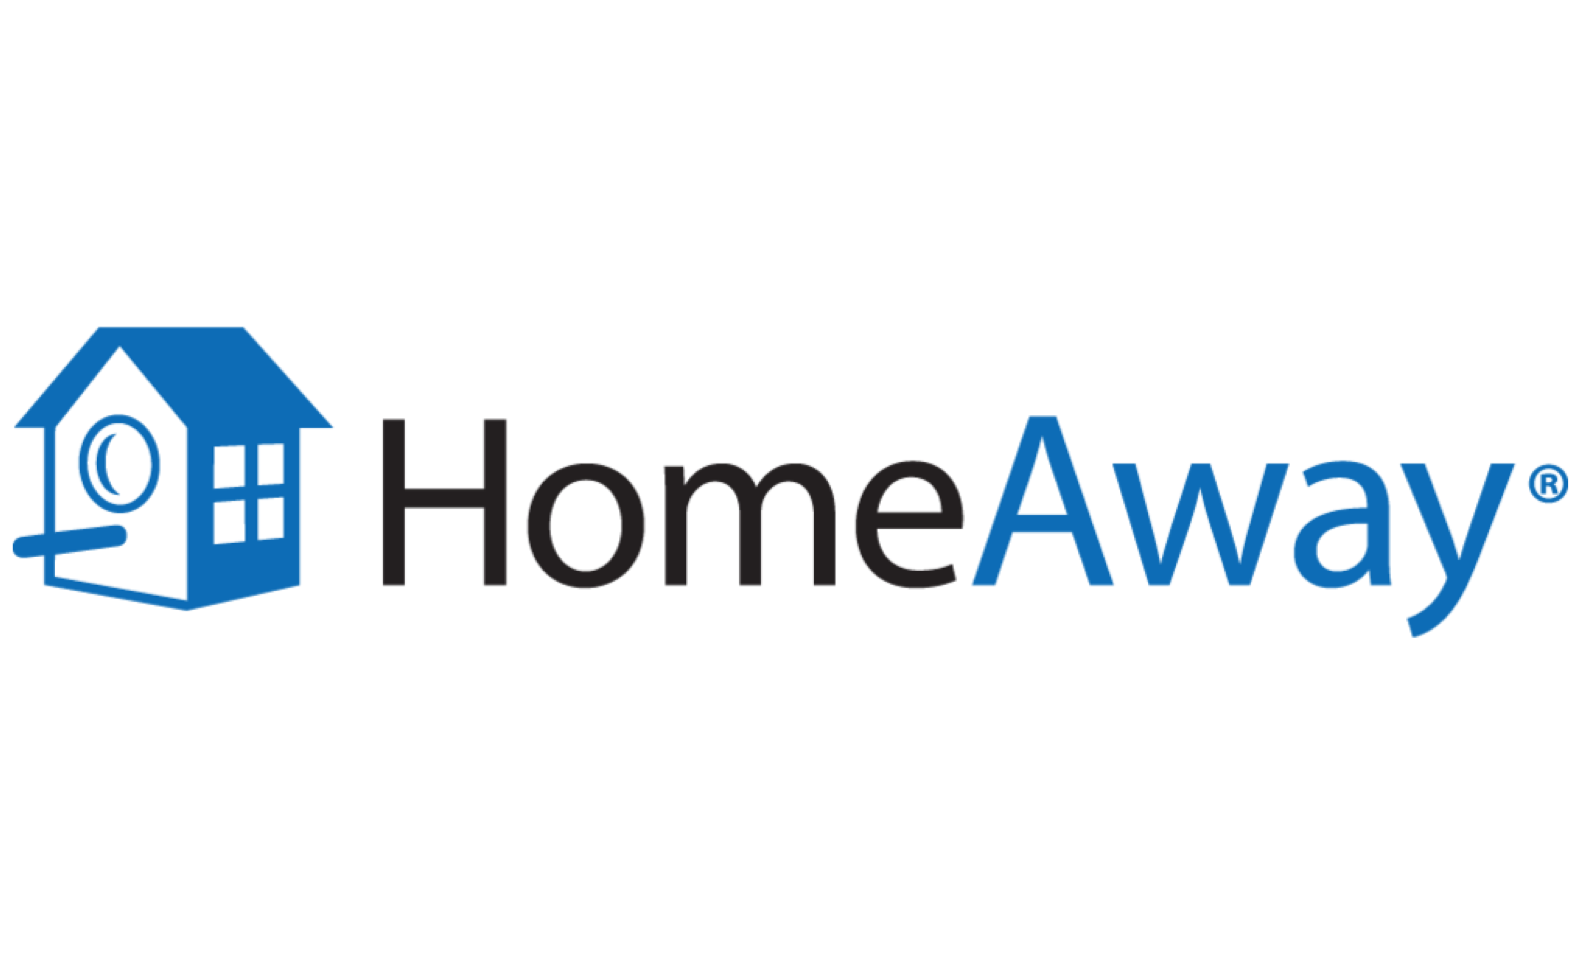 Homeaway on Happyguest.co.uk